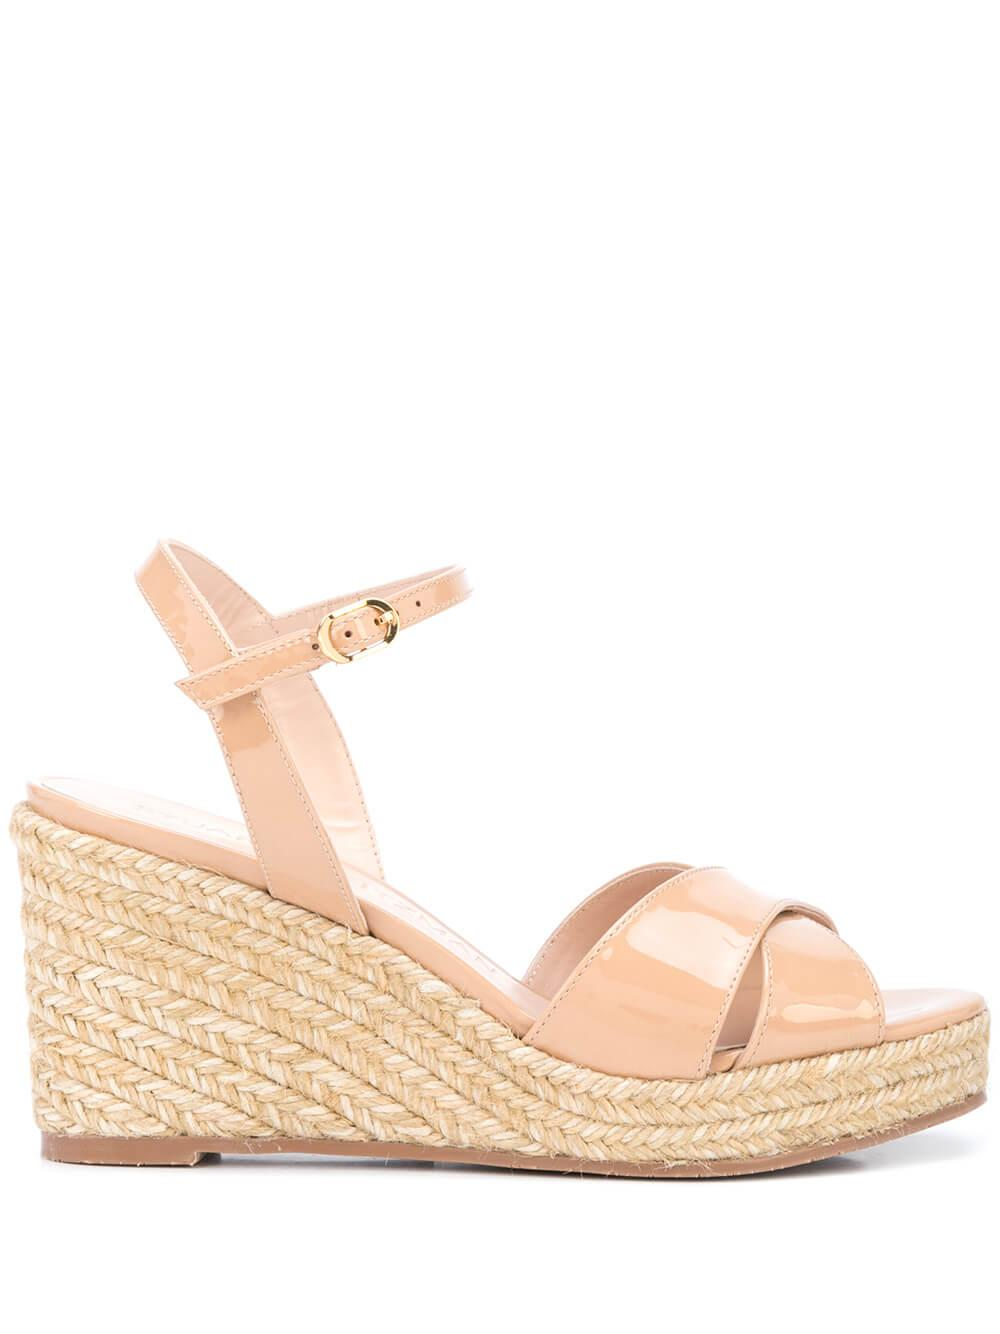 Patent 75MM Wedge Platform Sandal